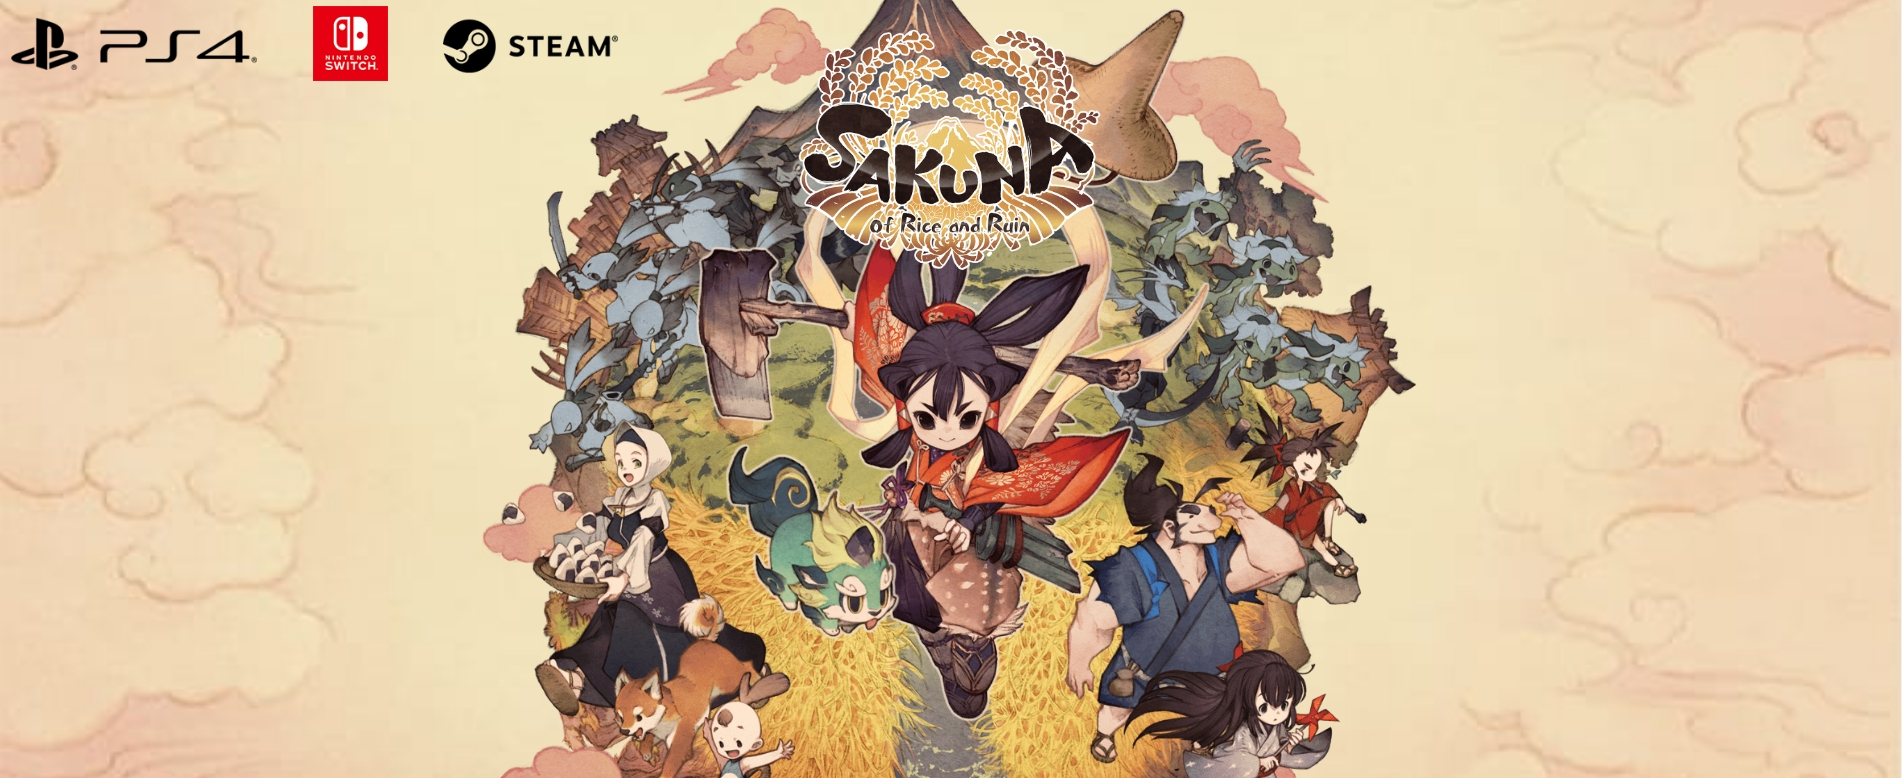 XSEED Games Announces Physical Edition of Sakuna: Of Rice and Ruin On Consoles